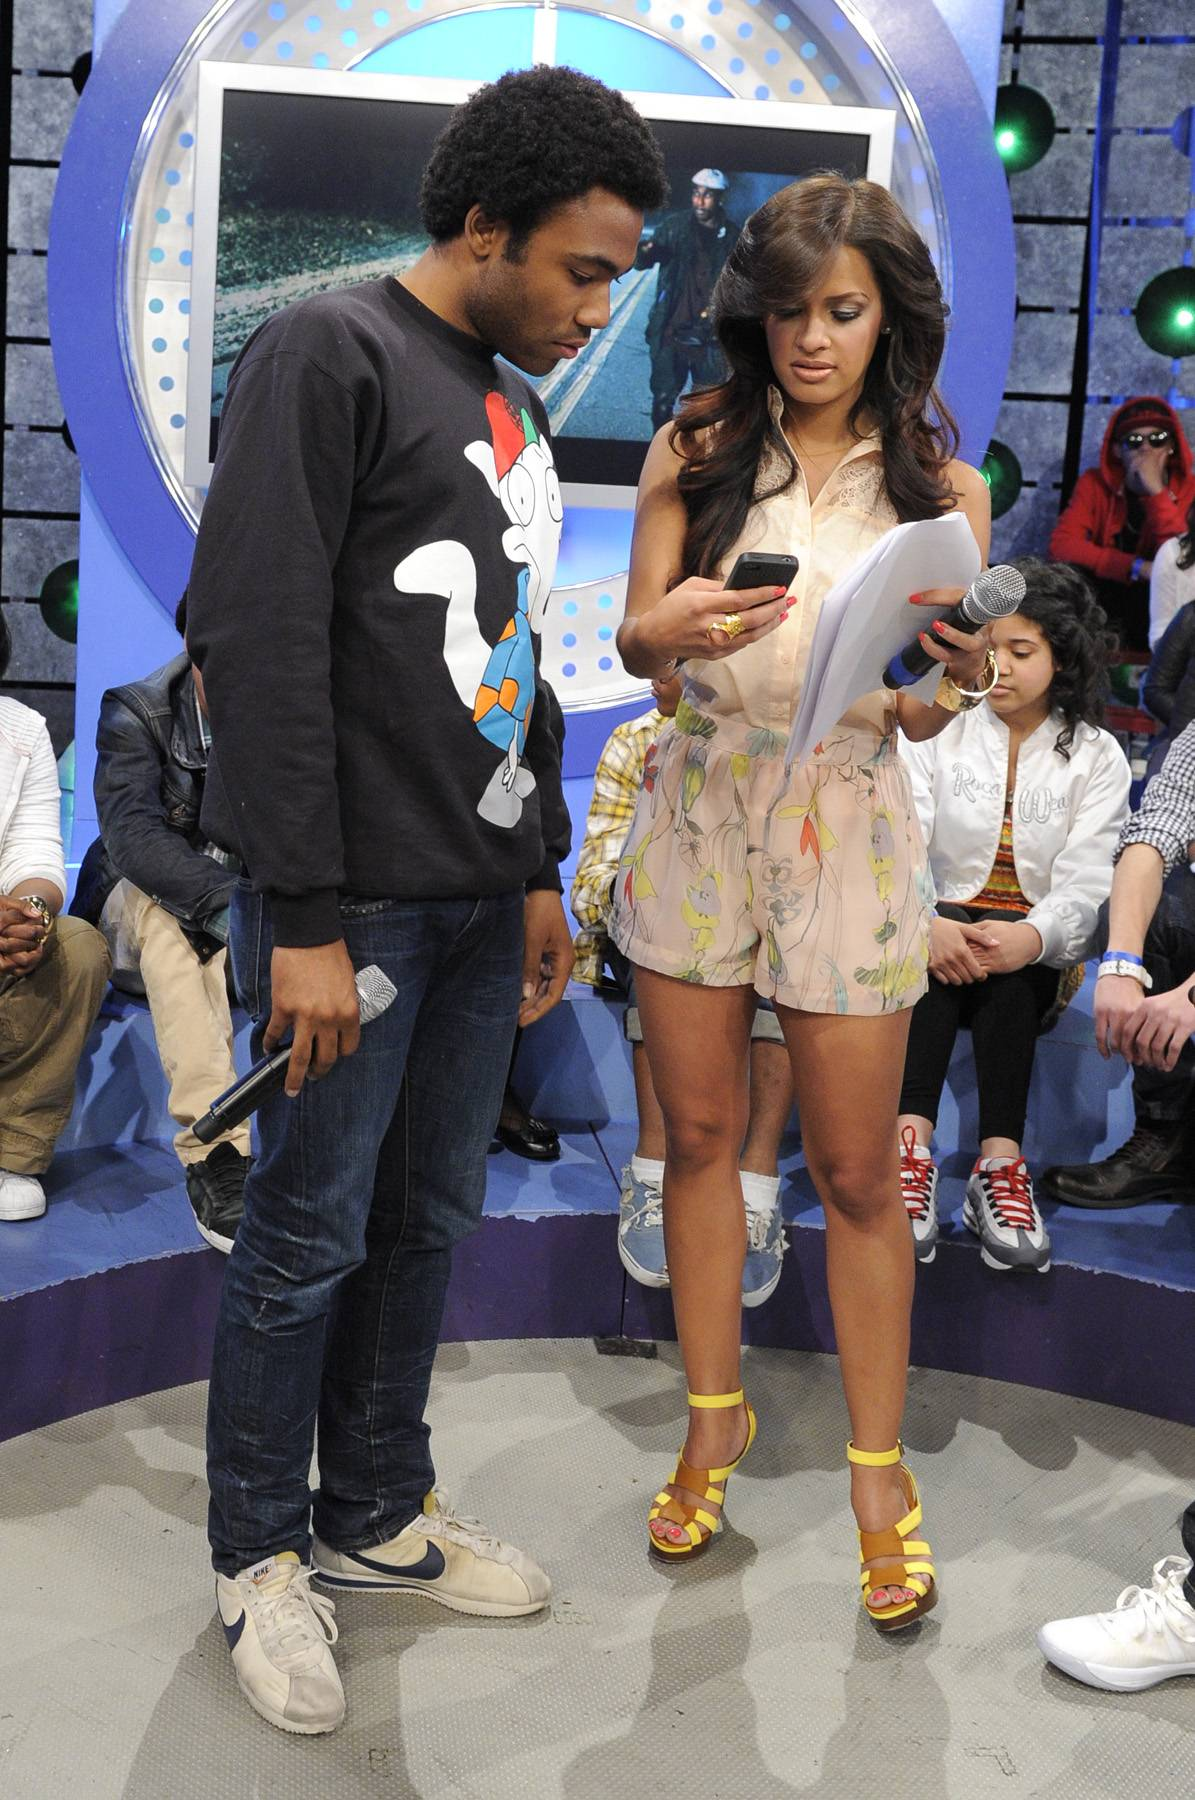 Take A Break - Childish Gambino with Rocsi Diaz during a commercial break at 106 & Park, May 1, 2012. (Photo: John Ricard / BET)